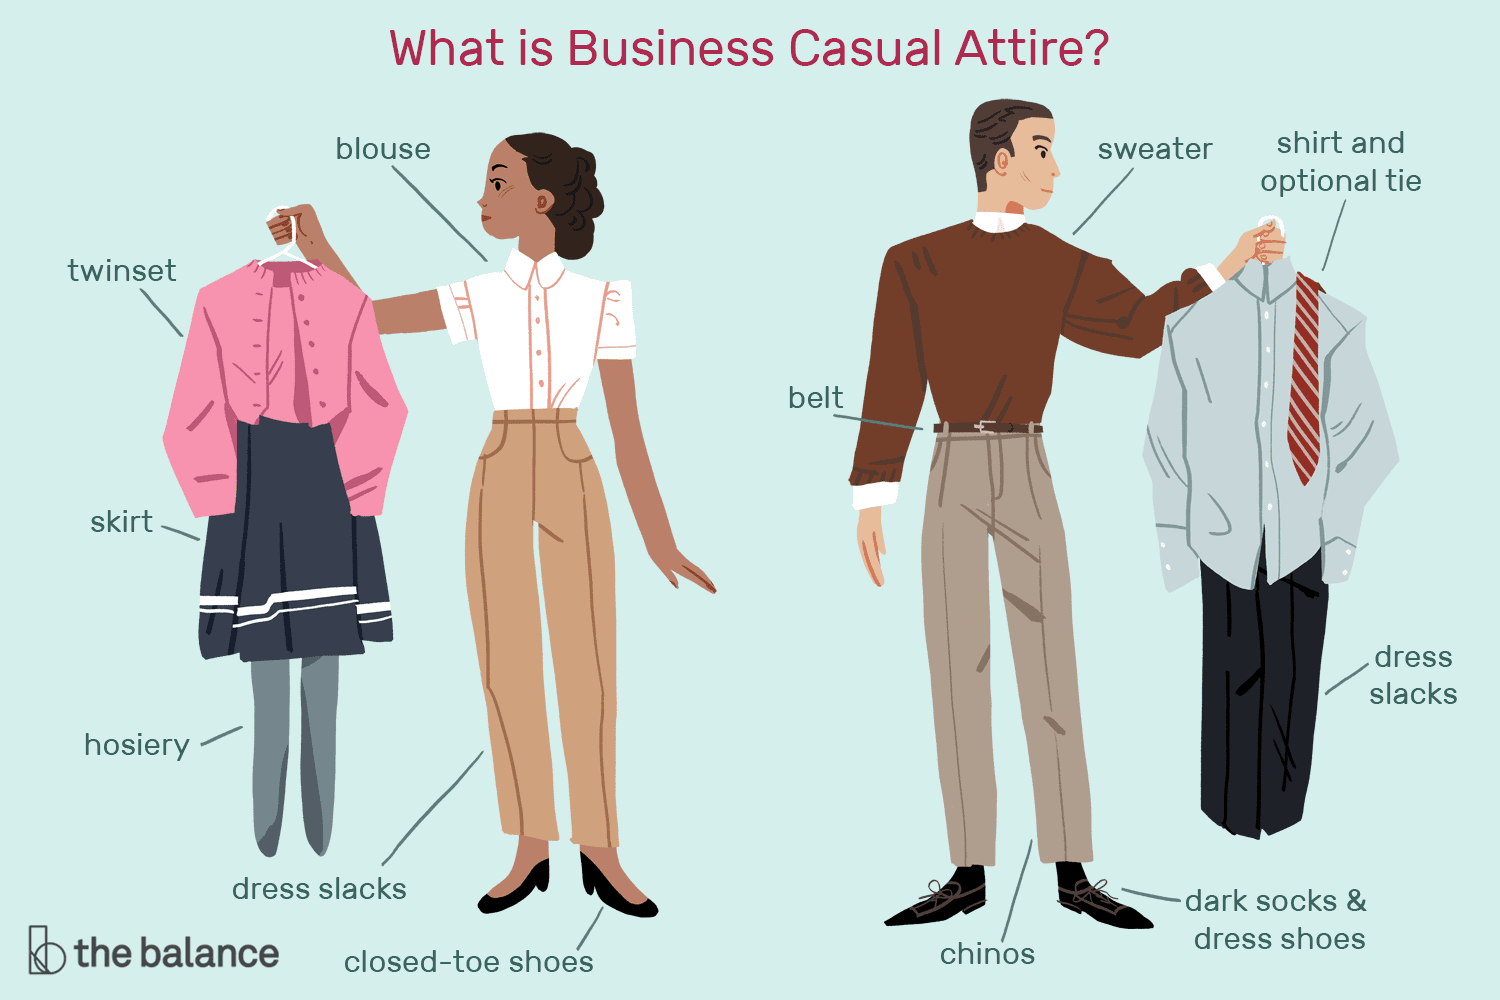 c9491b679ee What Does Business Casual Attire Mean